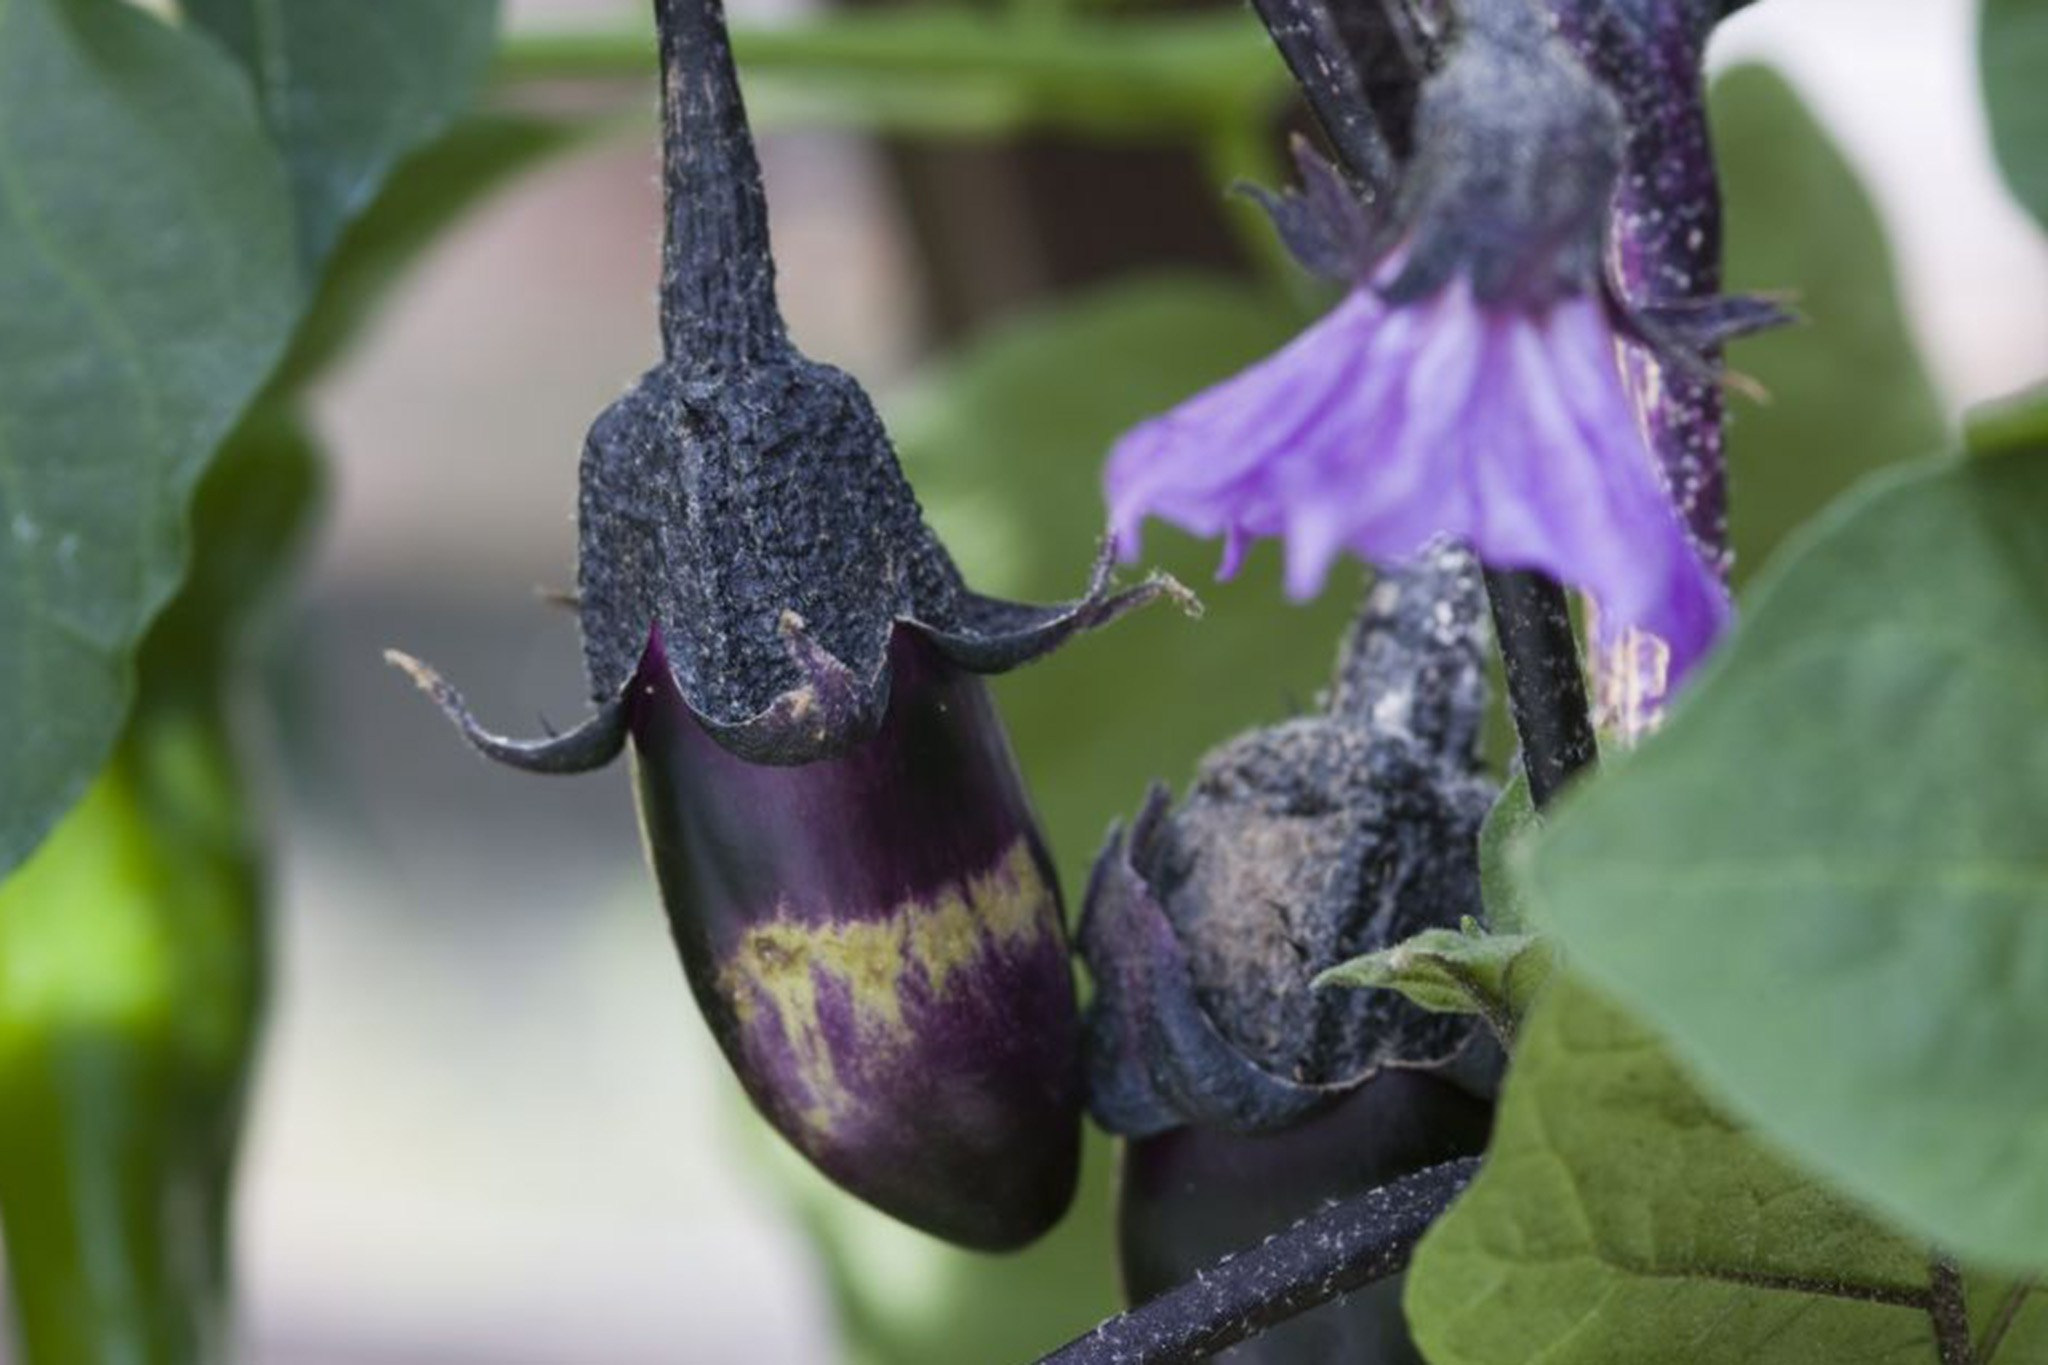 aubergine-fruit-developing-2